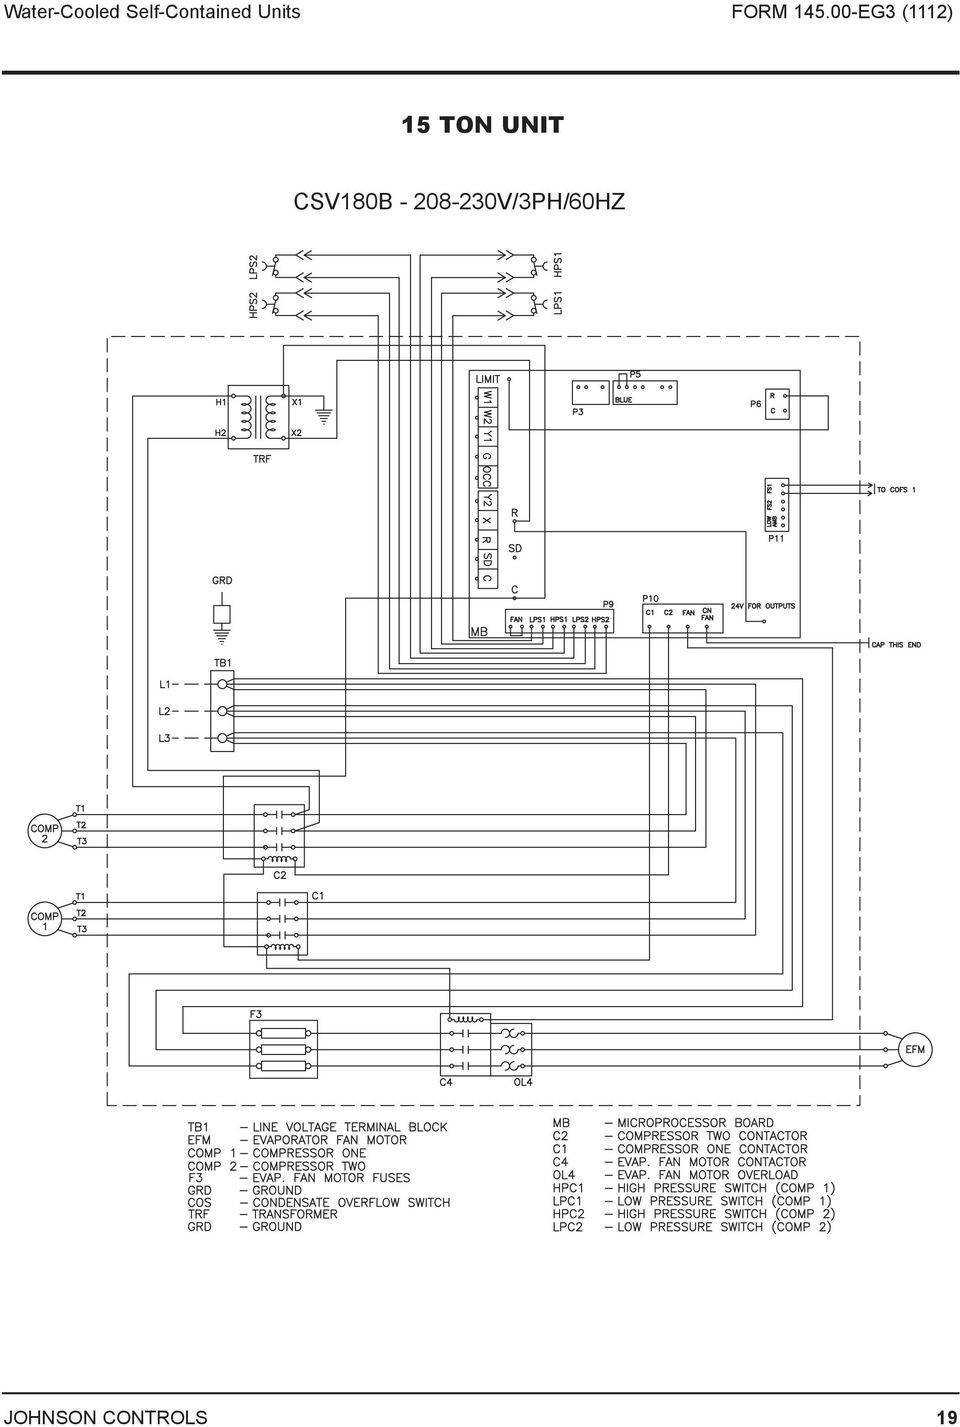 Johnson Control Board Wiring Diagrams Schematic Pressure Switch For Fan Diagram Engineering Guide Water Cooled Self Contained Units C Series Lennox